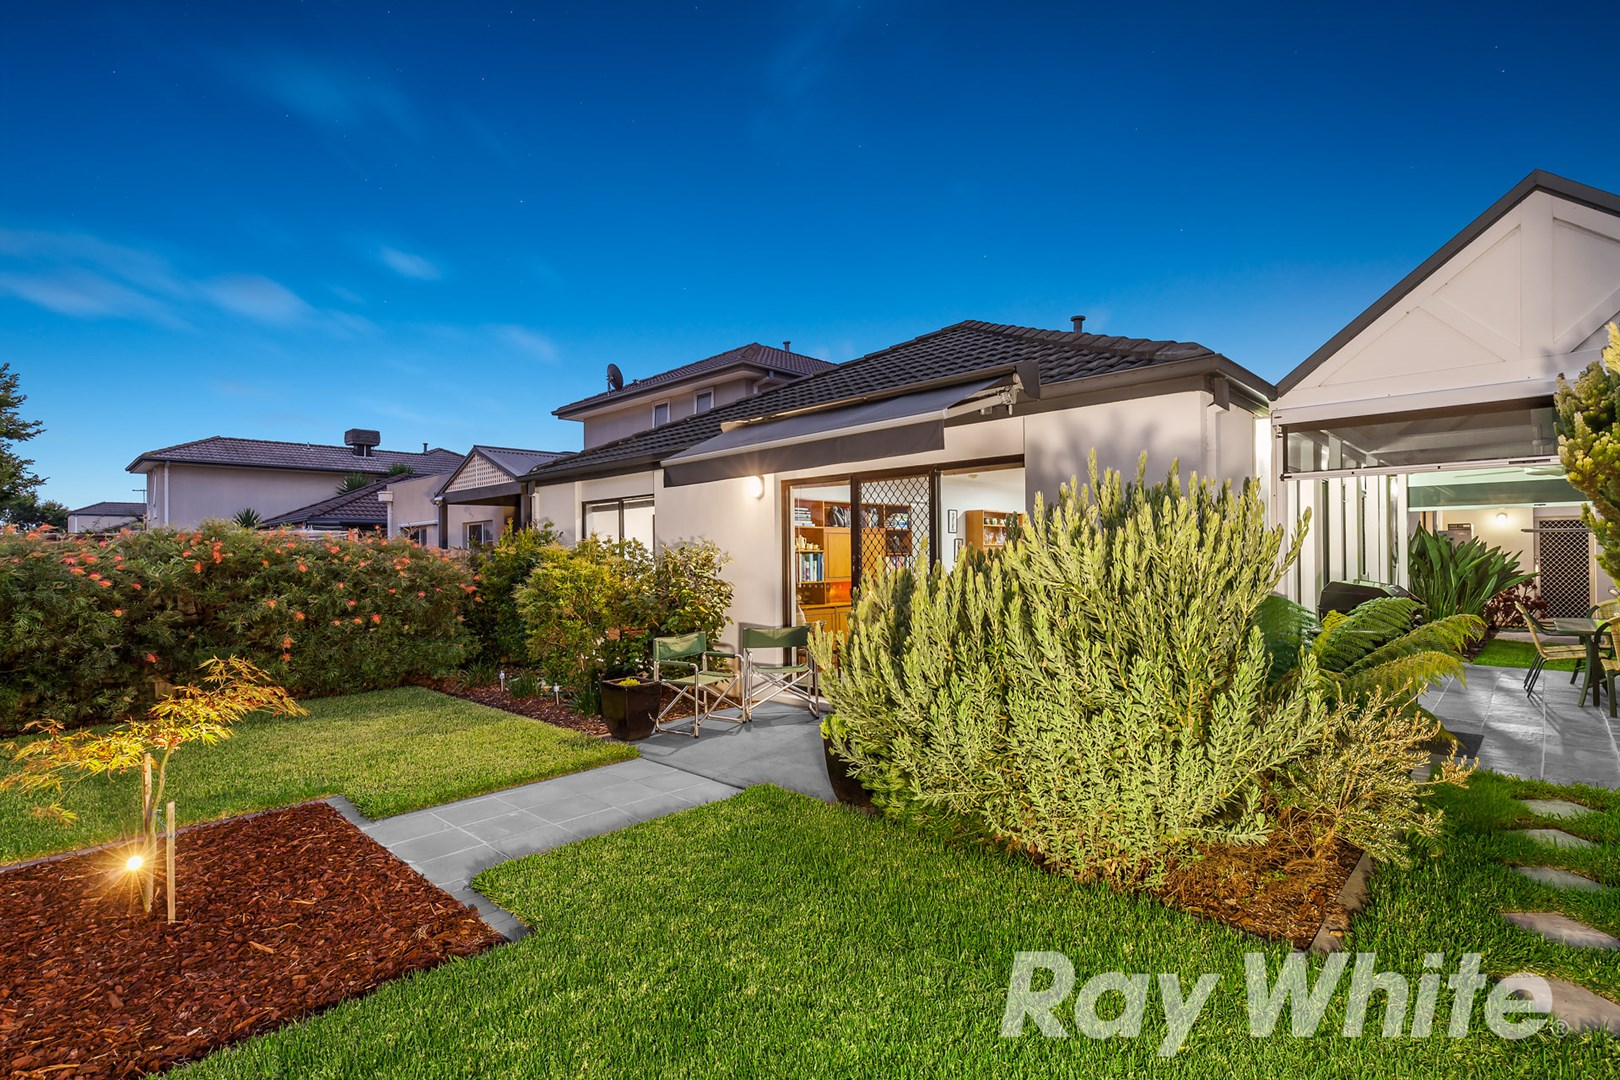 49 Sovereign Manors Crescent, Rowville